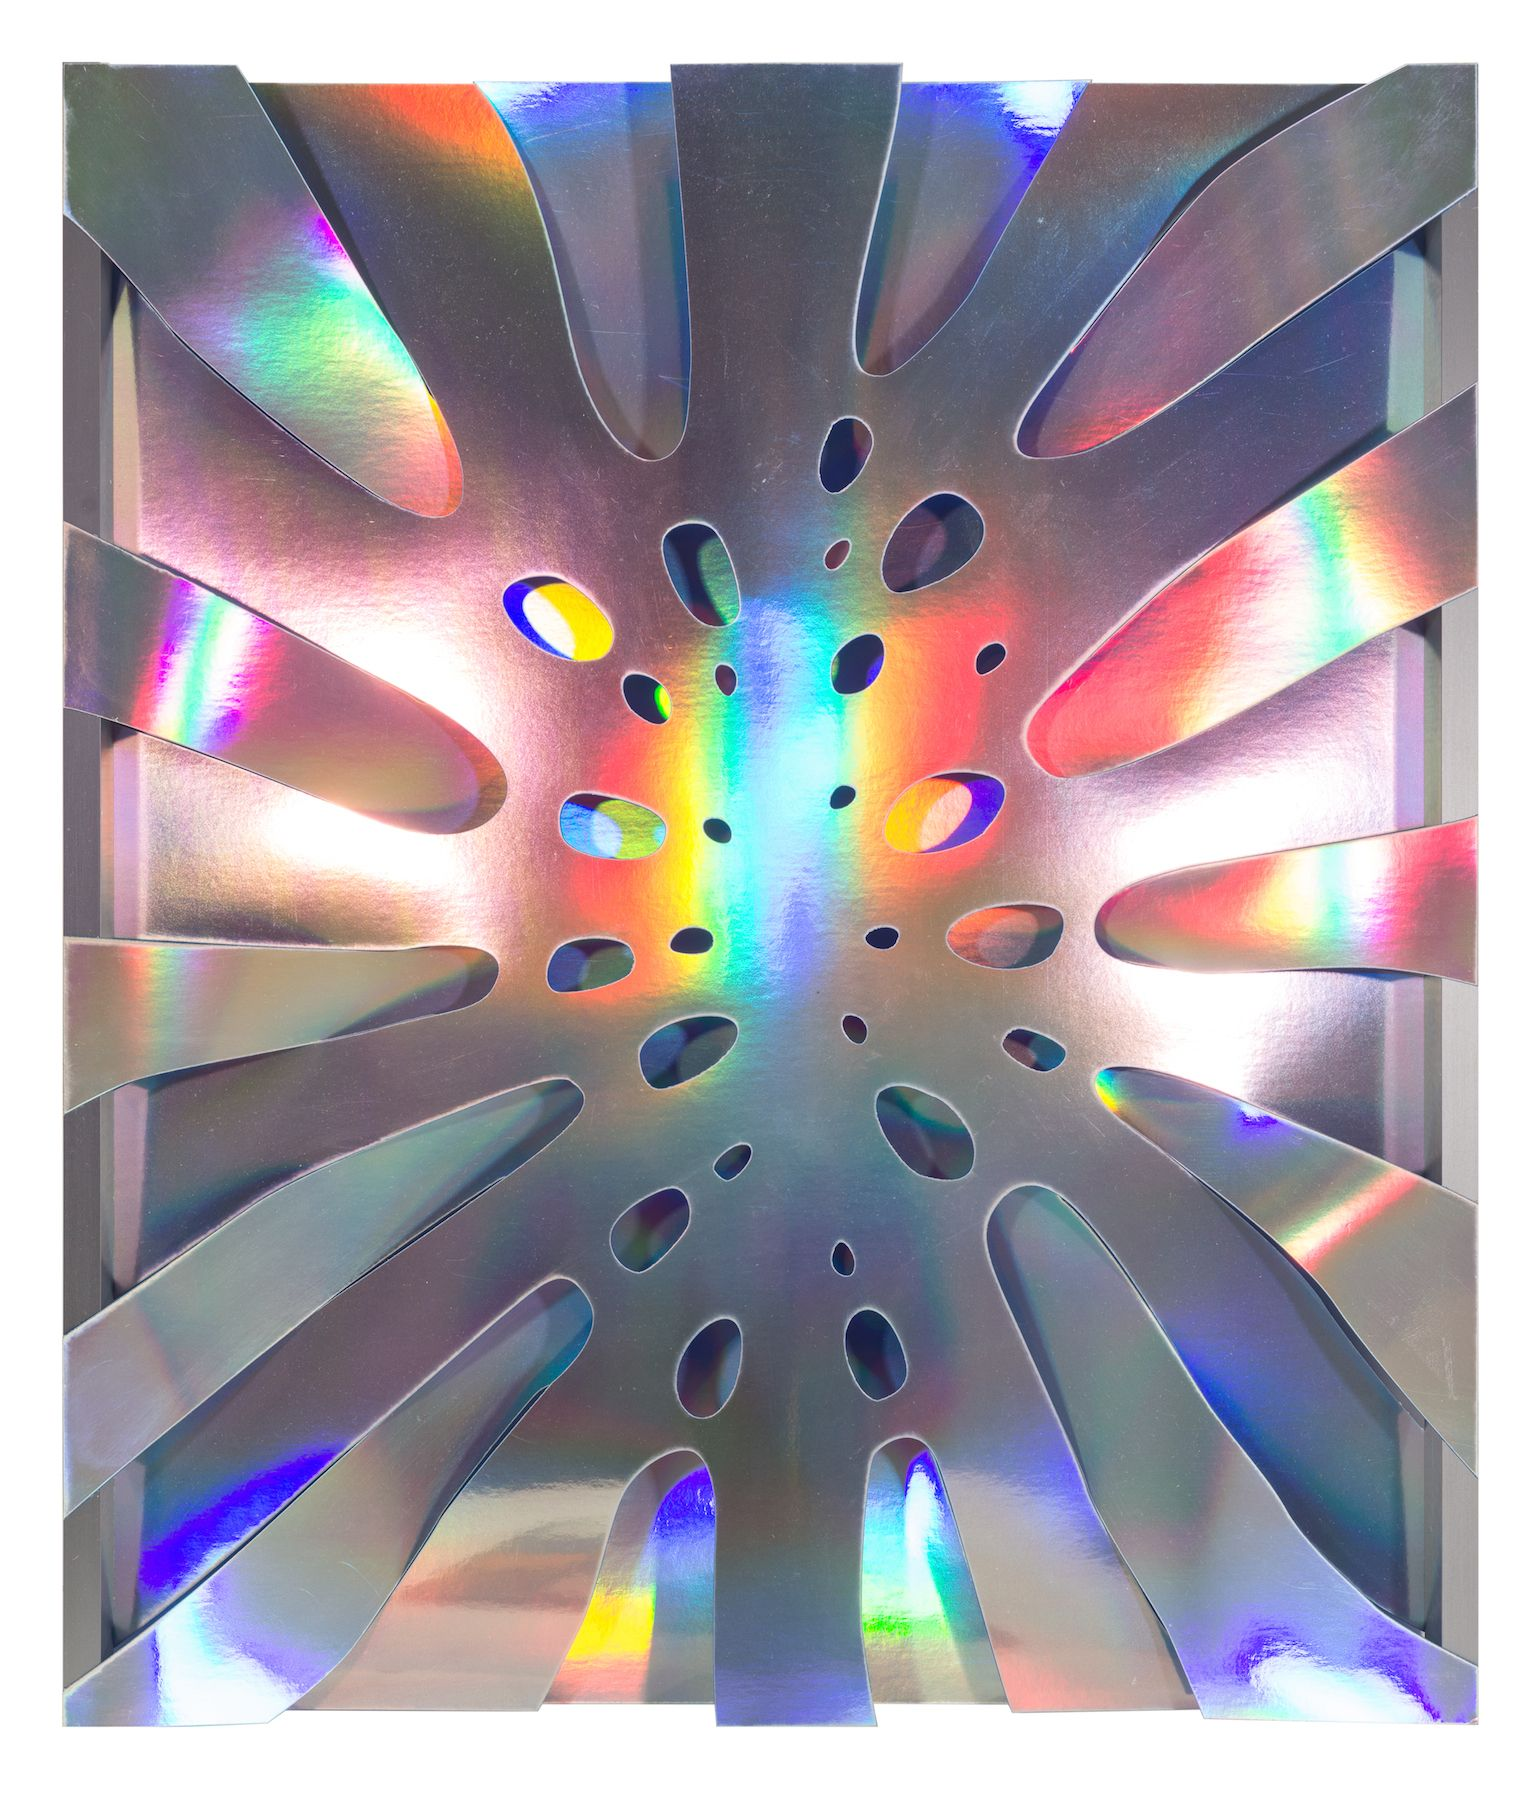 Thomas Glassford.(b. 1963, USA/Mexico.Untitled (Blue), 2014.Holographic paper and anodized aluminum 21 17/32 x 18 1/2 x 1 in. (54.7 x 47 x 2.5 cm.)